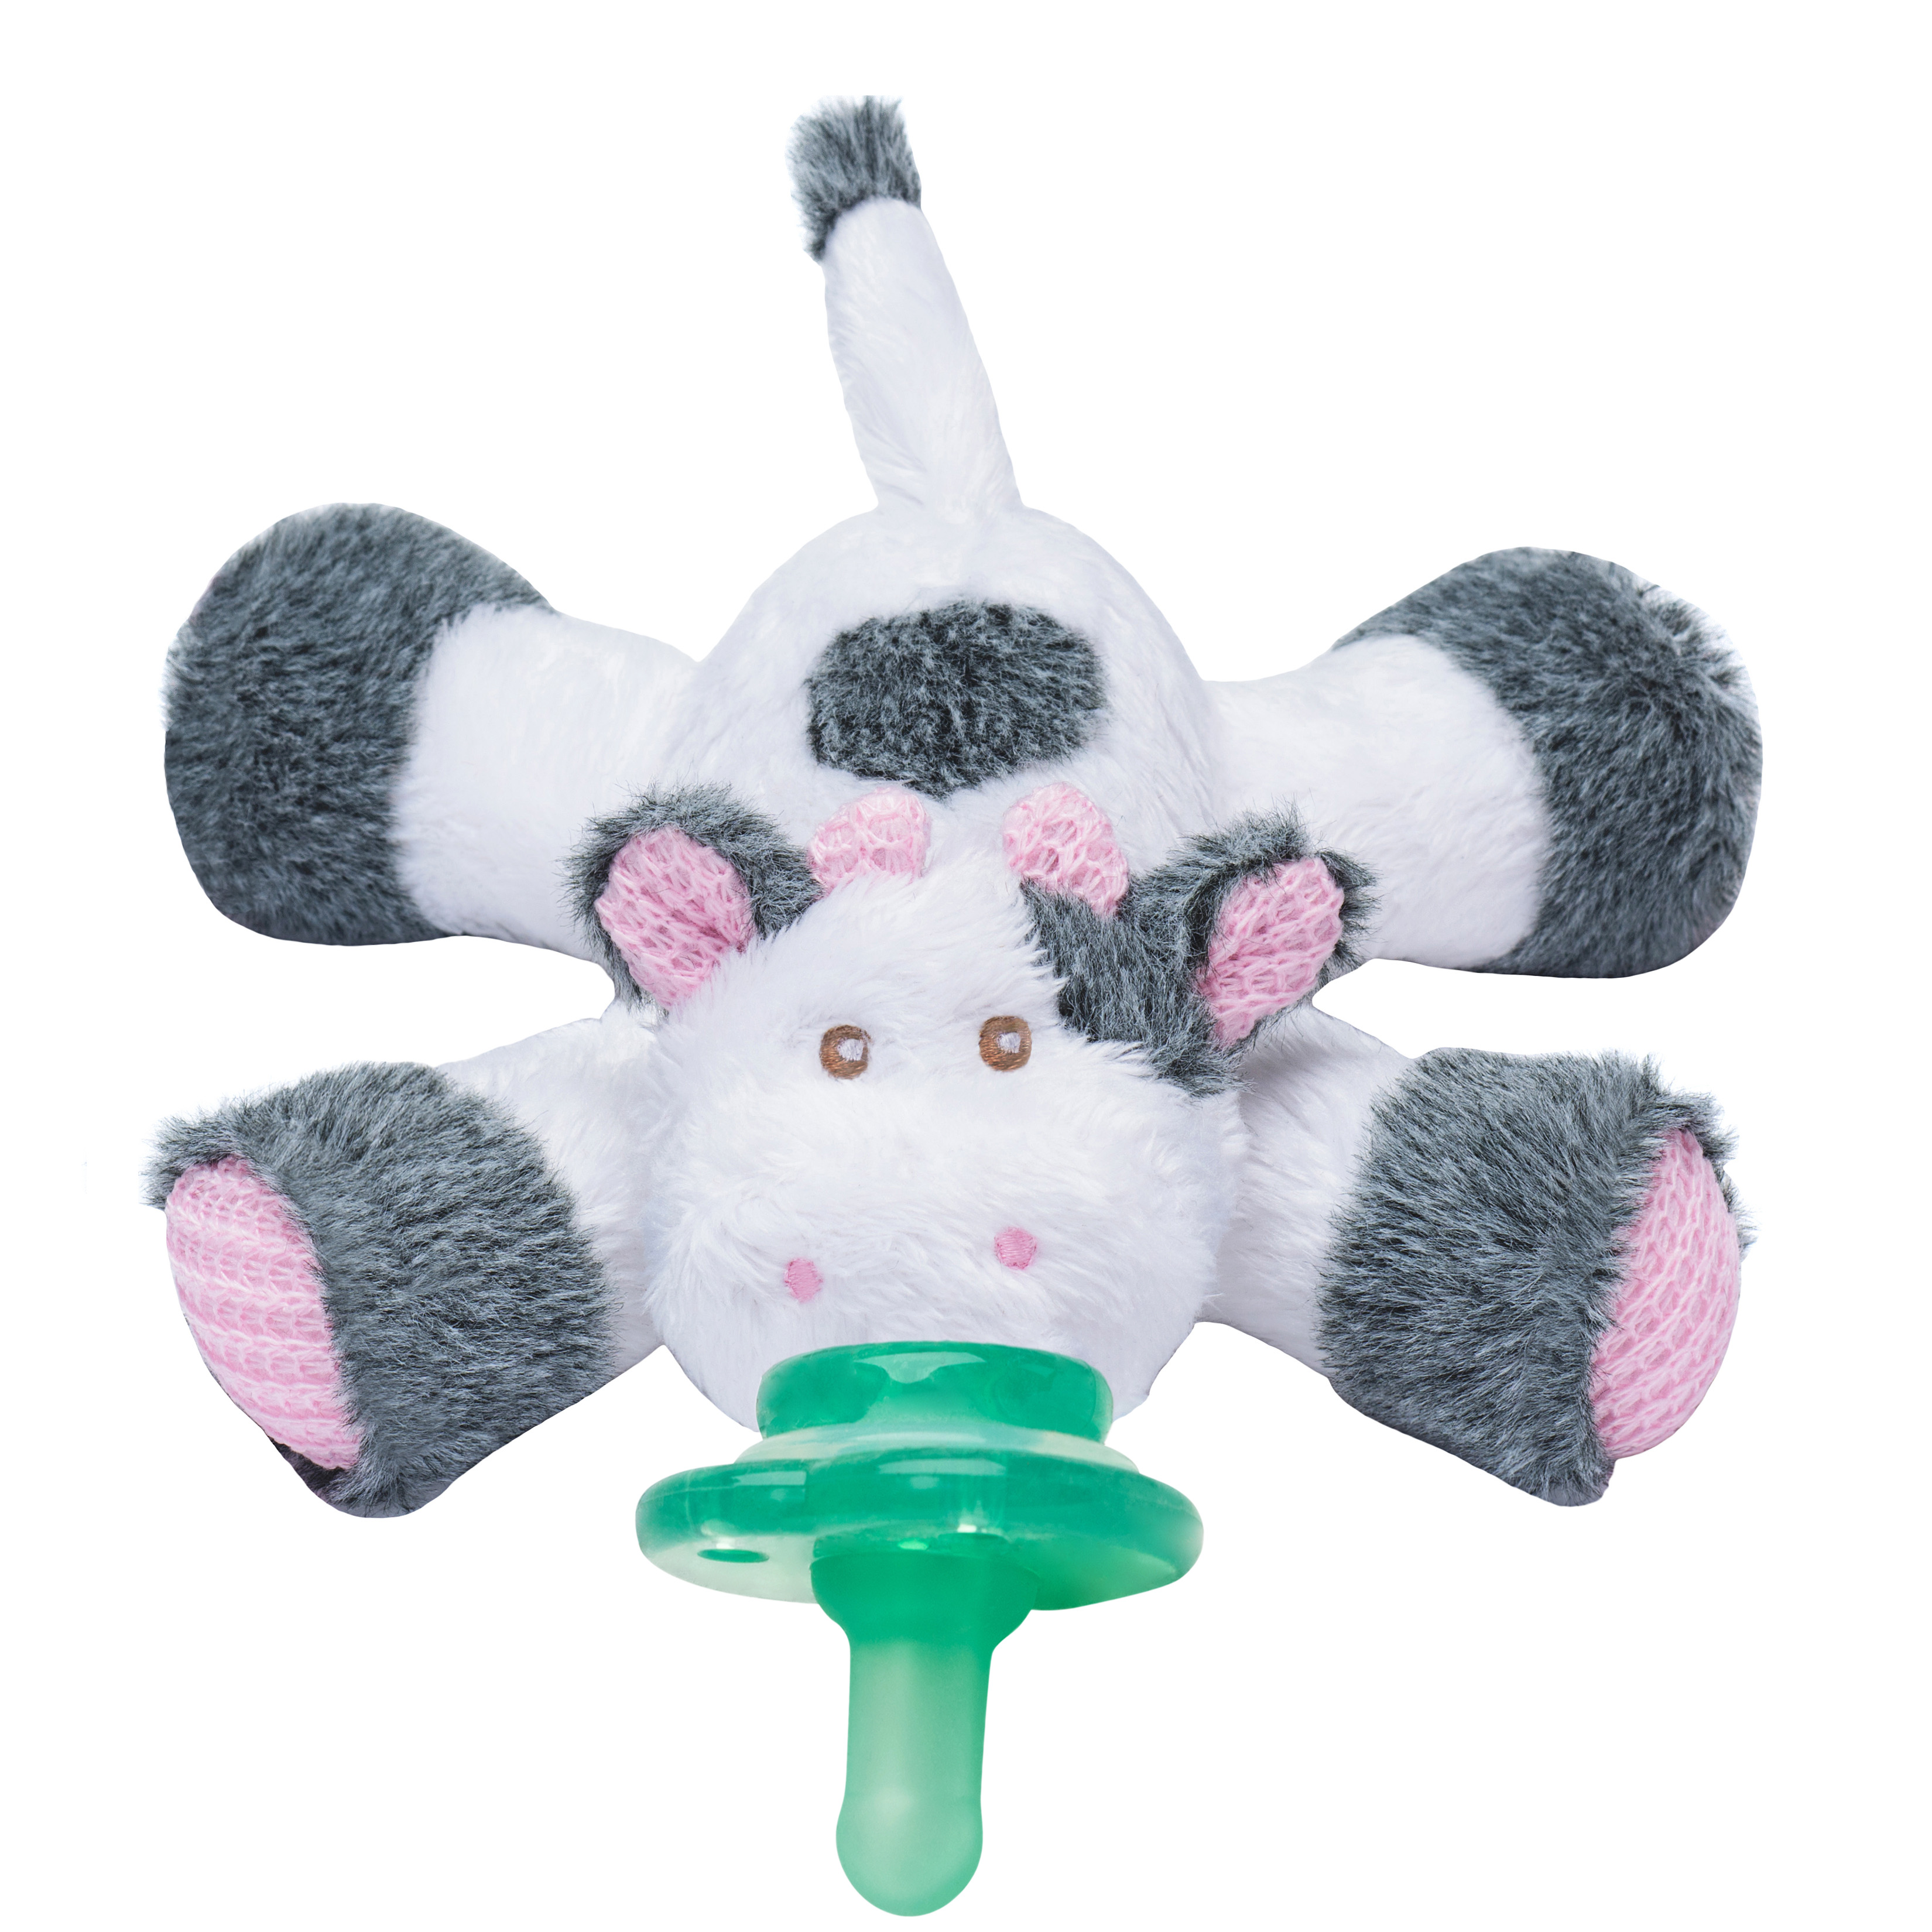 Nookums Paci-Plushies Buddies Cow Pacifier Holder by nookums